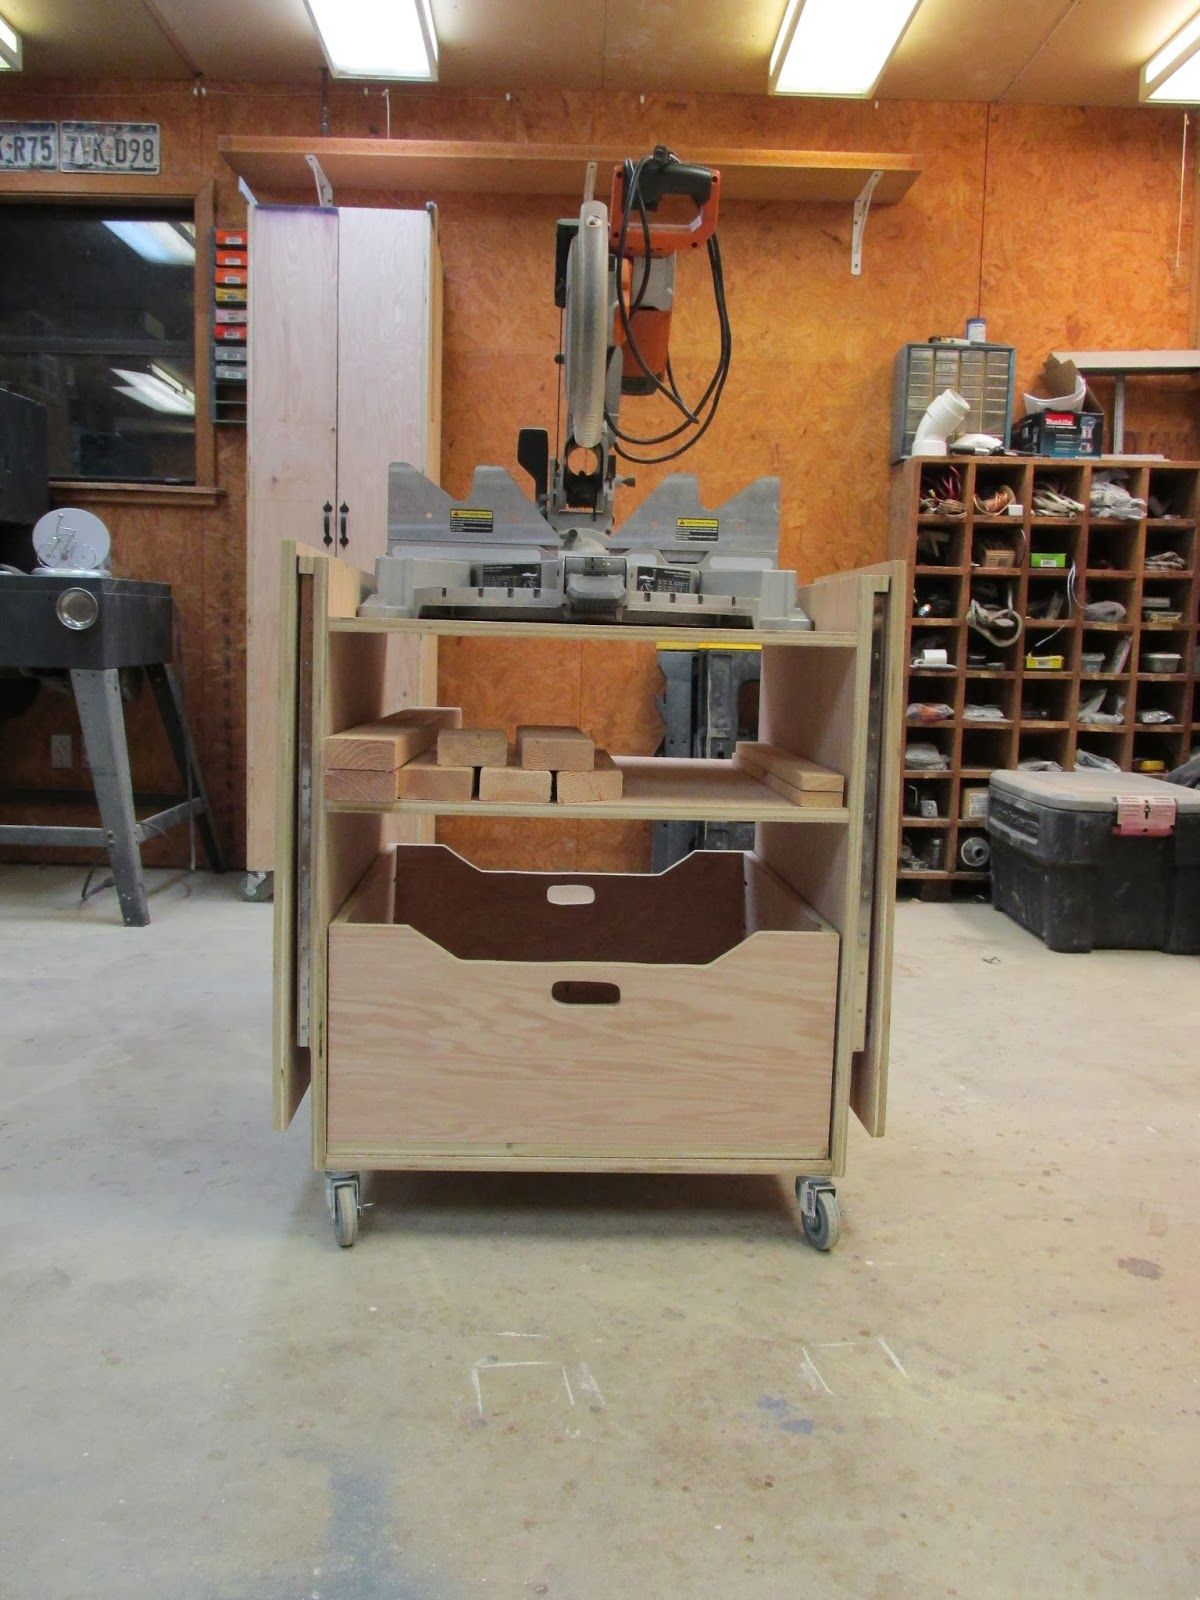 Wilker Do's DIY Miter Saw Stand Diy table saw, Mitre